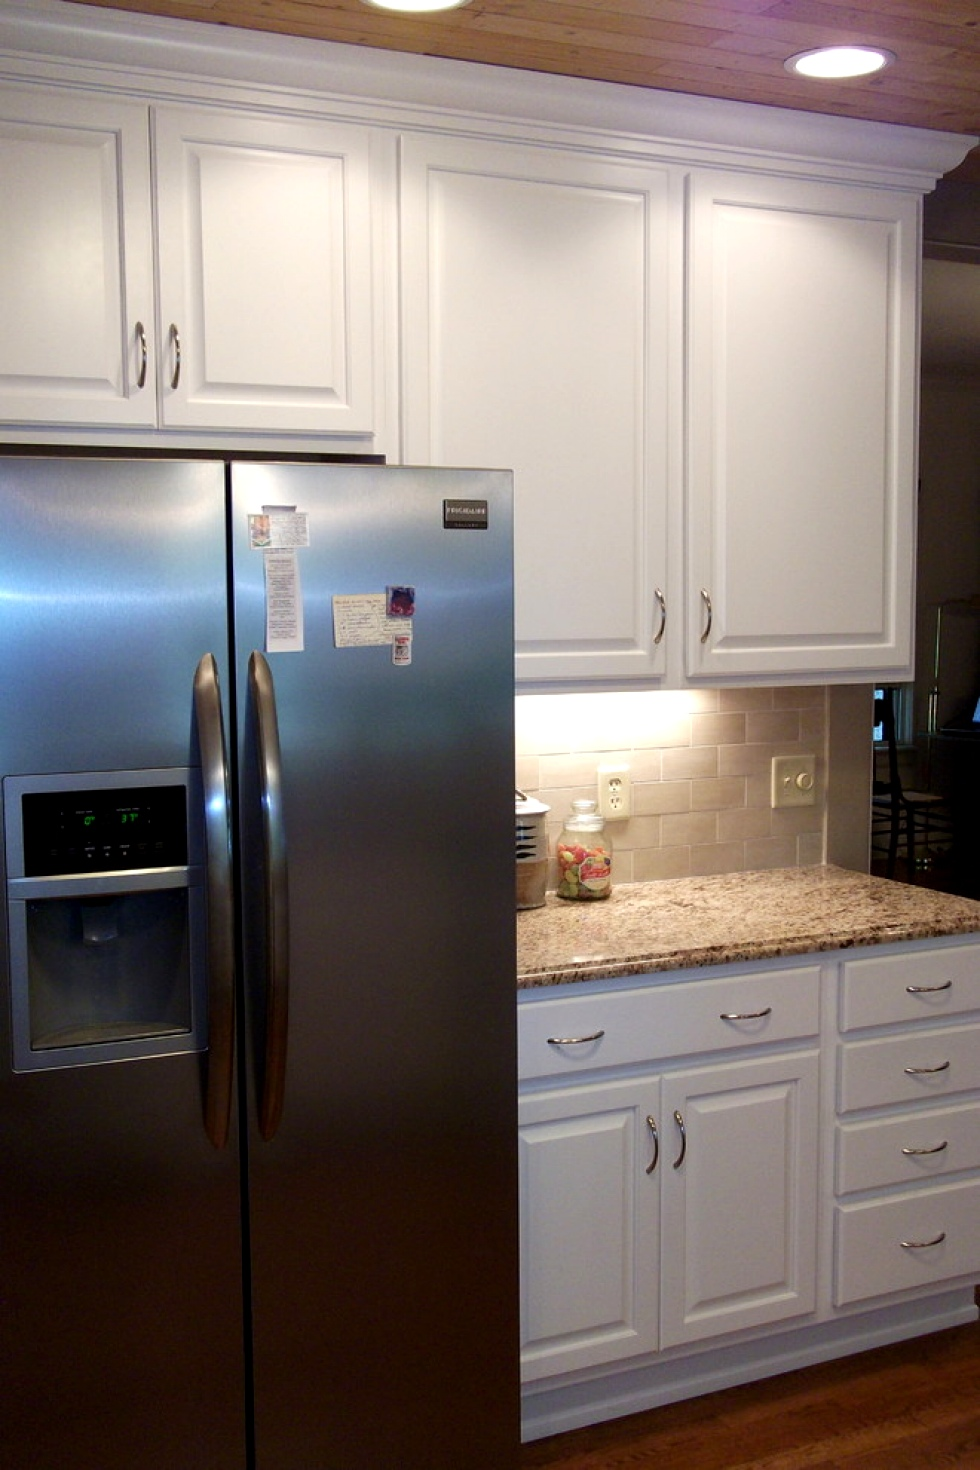 pretty wooden kitchen bertch cabinets in white with silver handle and granite countertop plus fridge for kitchen decor ideas